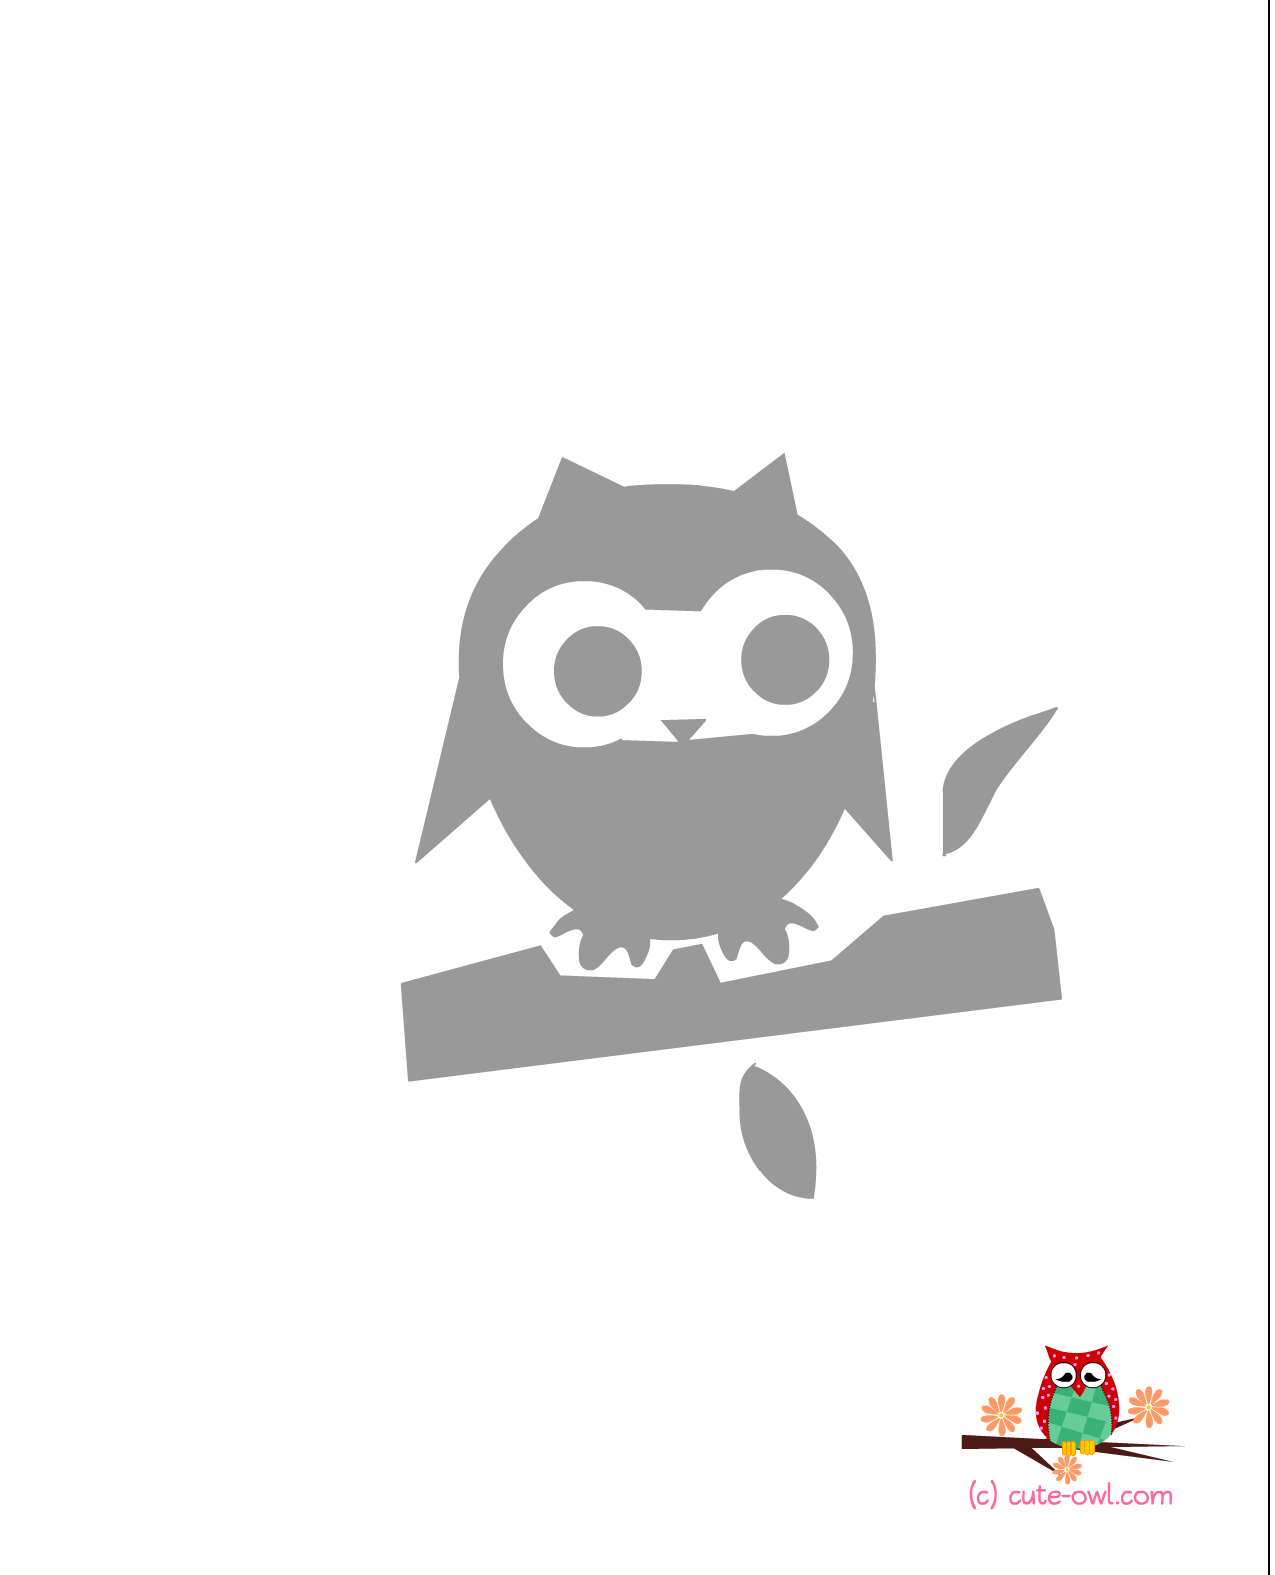 photo about Printable Owl Stencils titled Lovable Owl Stencils Absolutely free Printable Child Shower Owl stencil